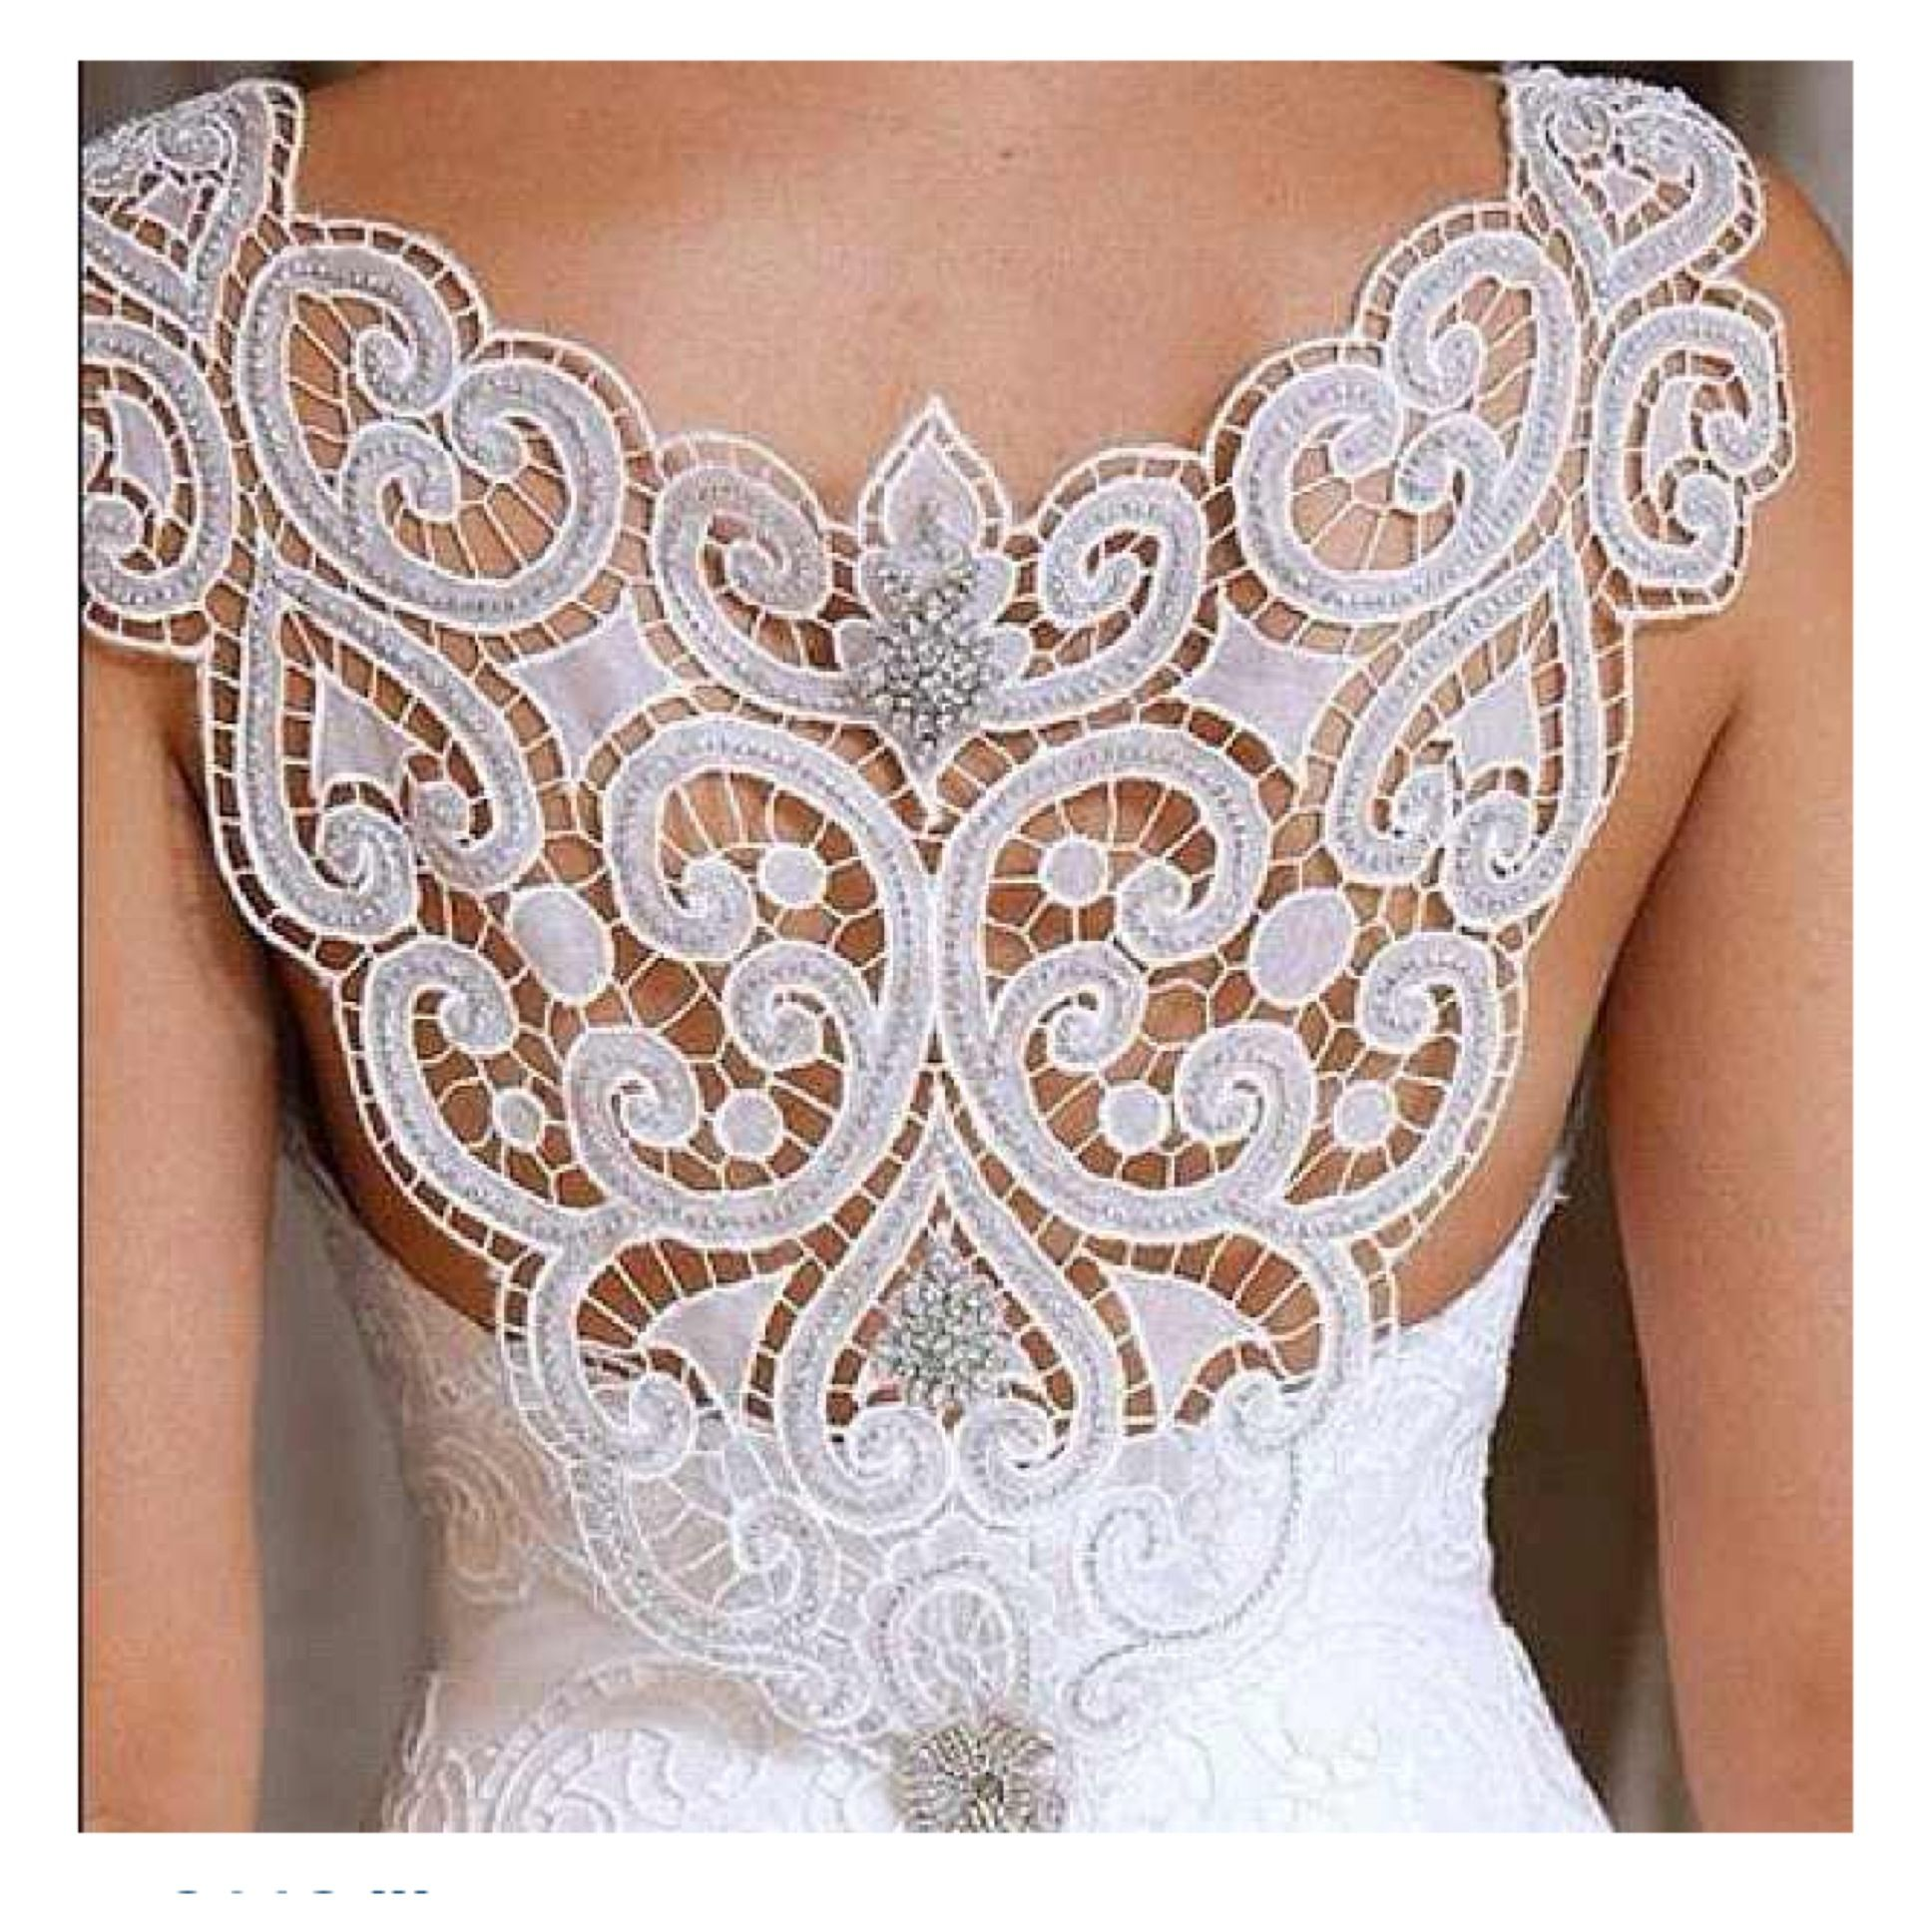 Dresses dress up pinterest dress ideas wedding and wedding